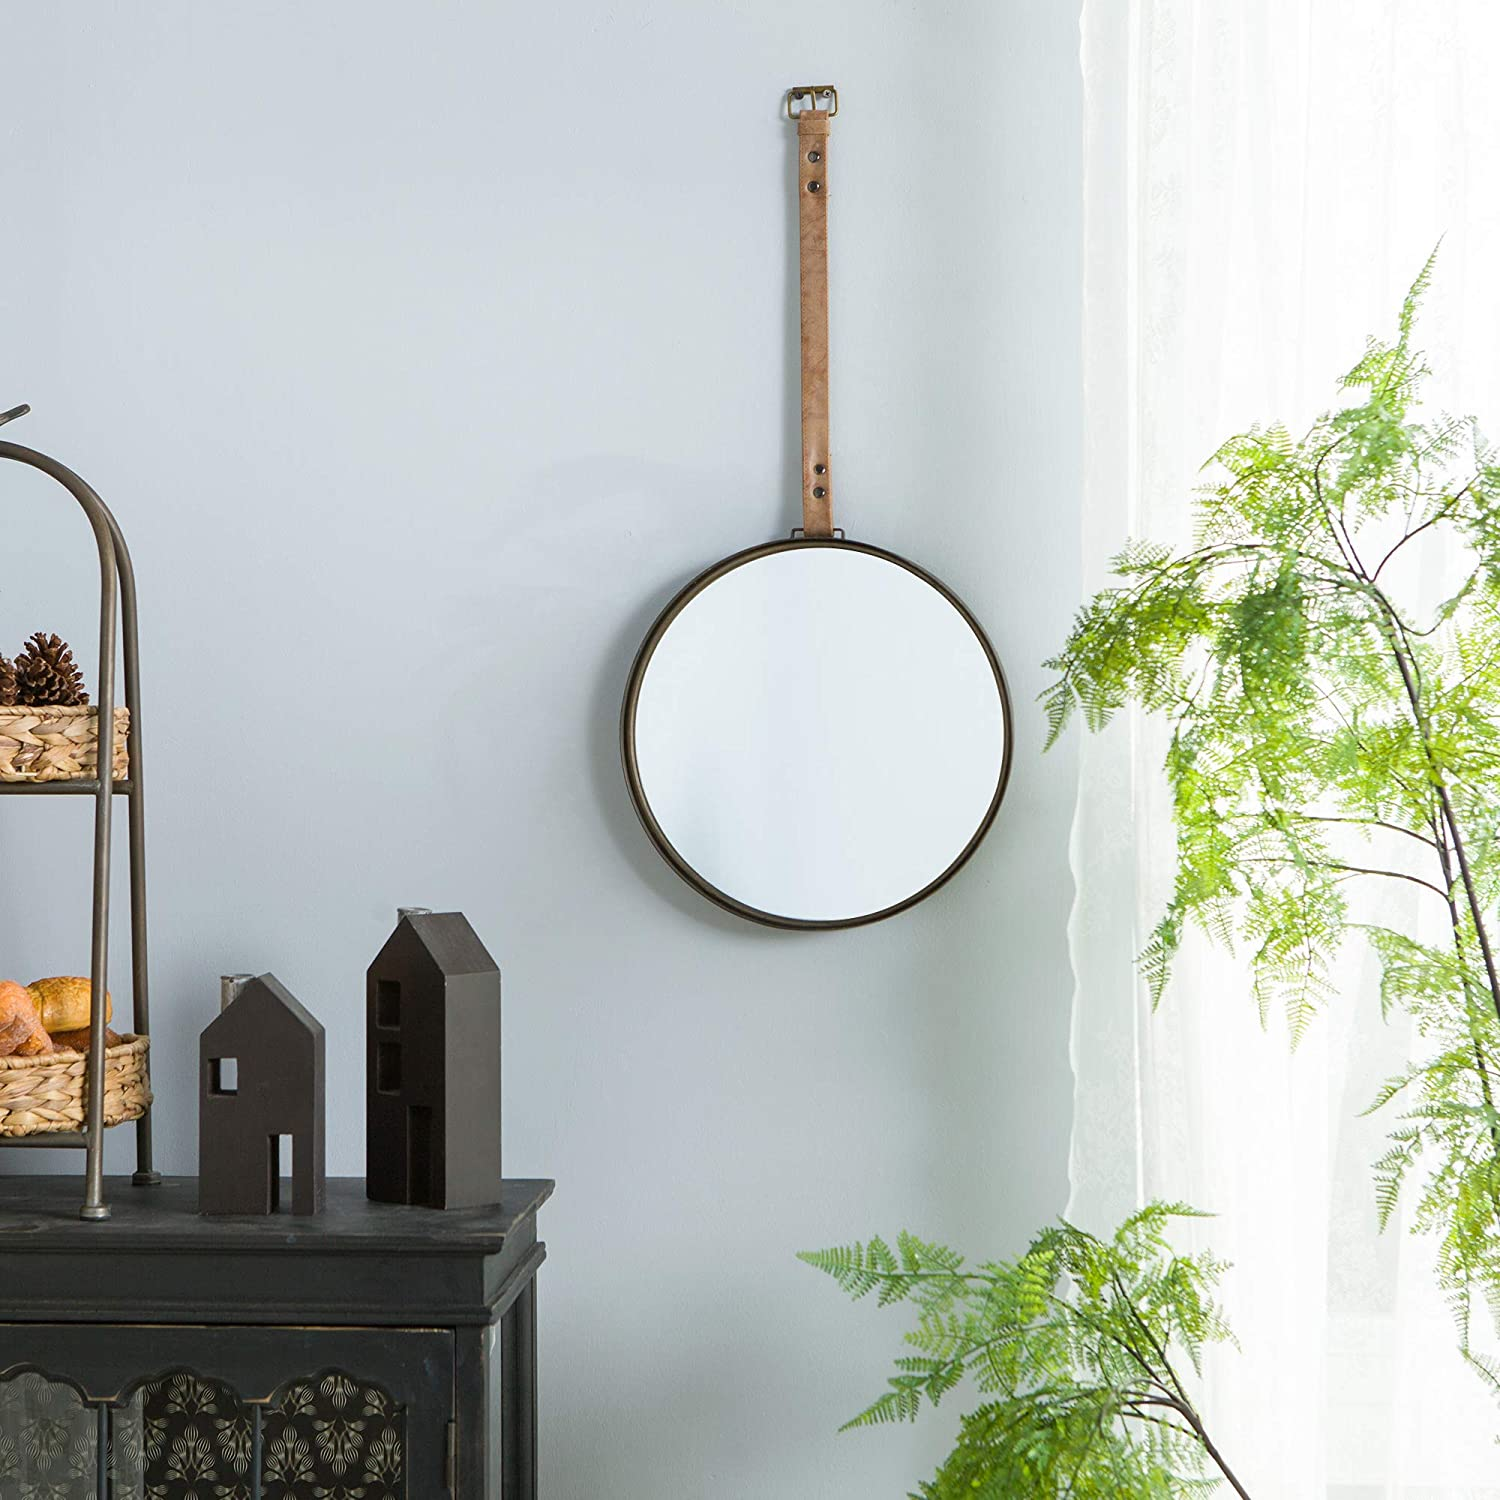 NIKKY HOME Vintage Finally resale start Metal Round Mirror with Wall Max 68% OFF Leather Hanging